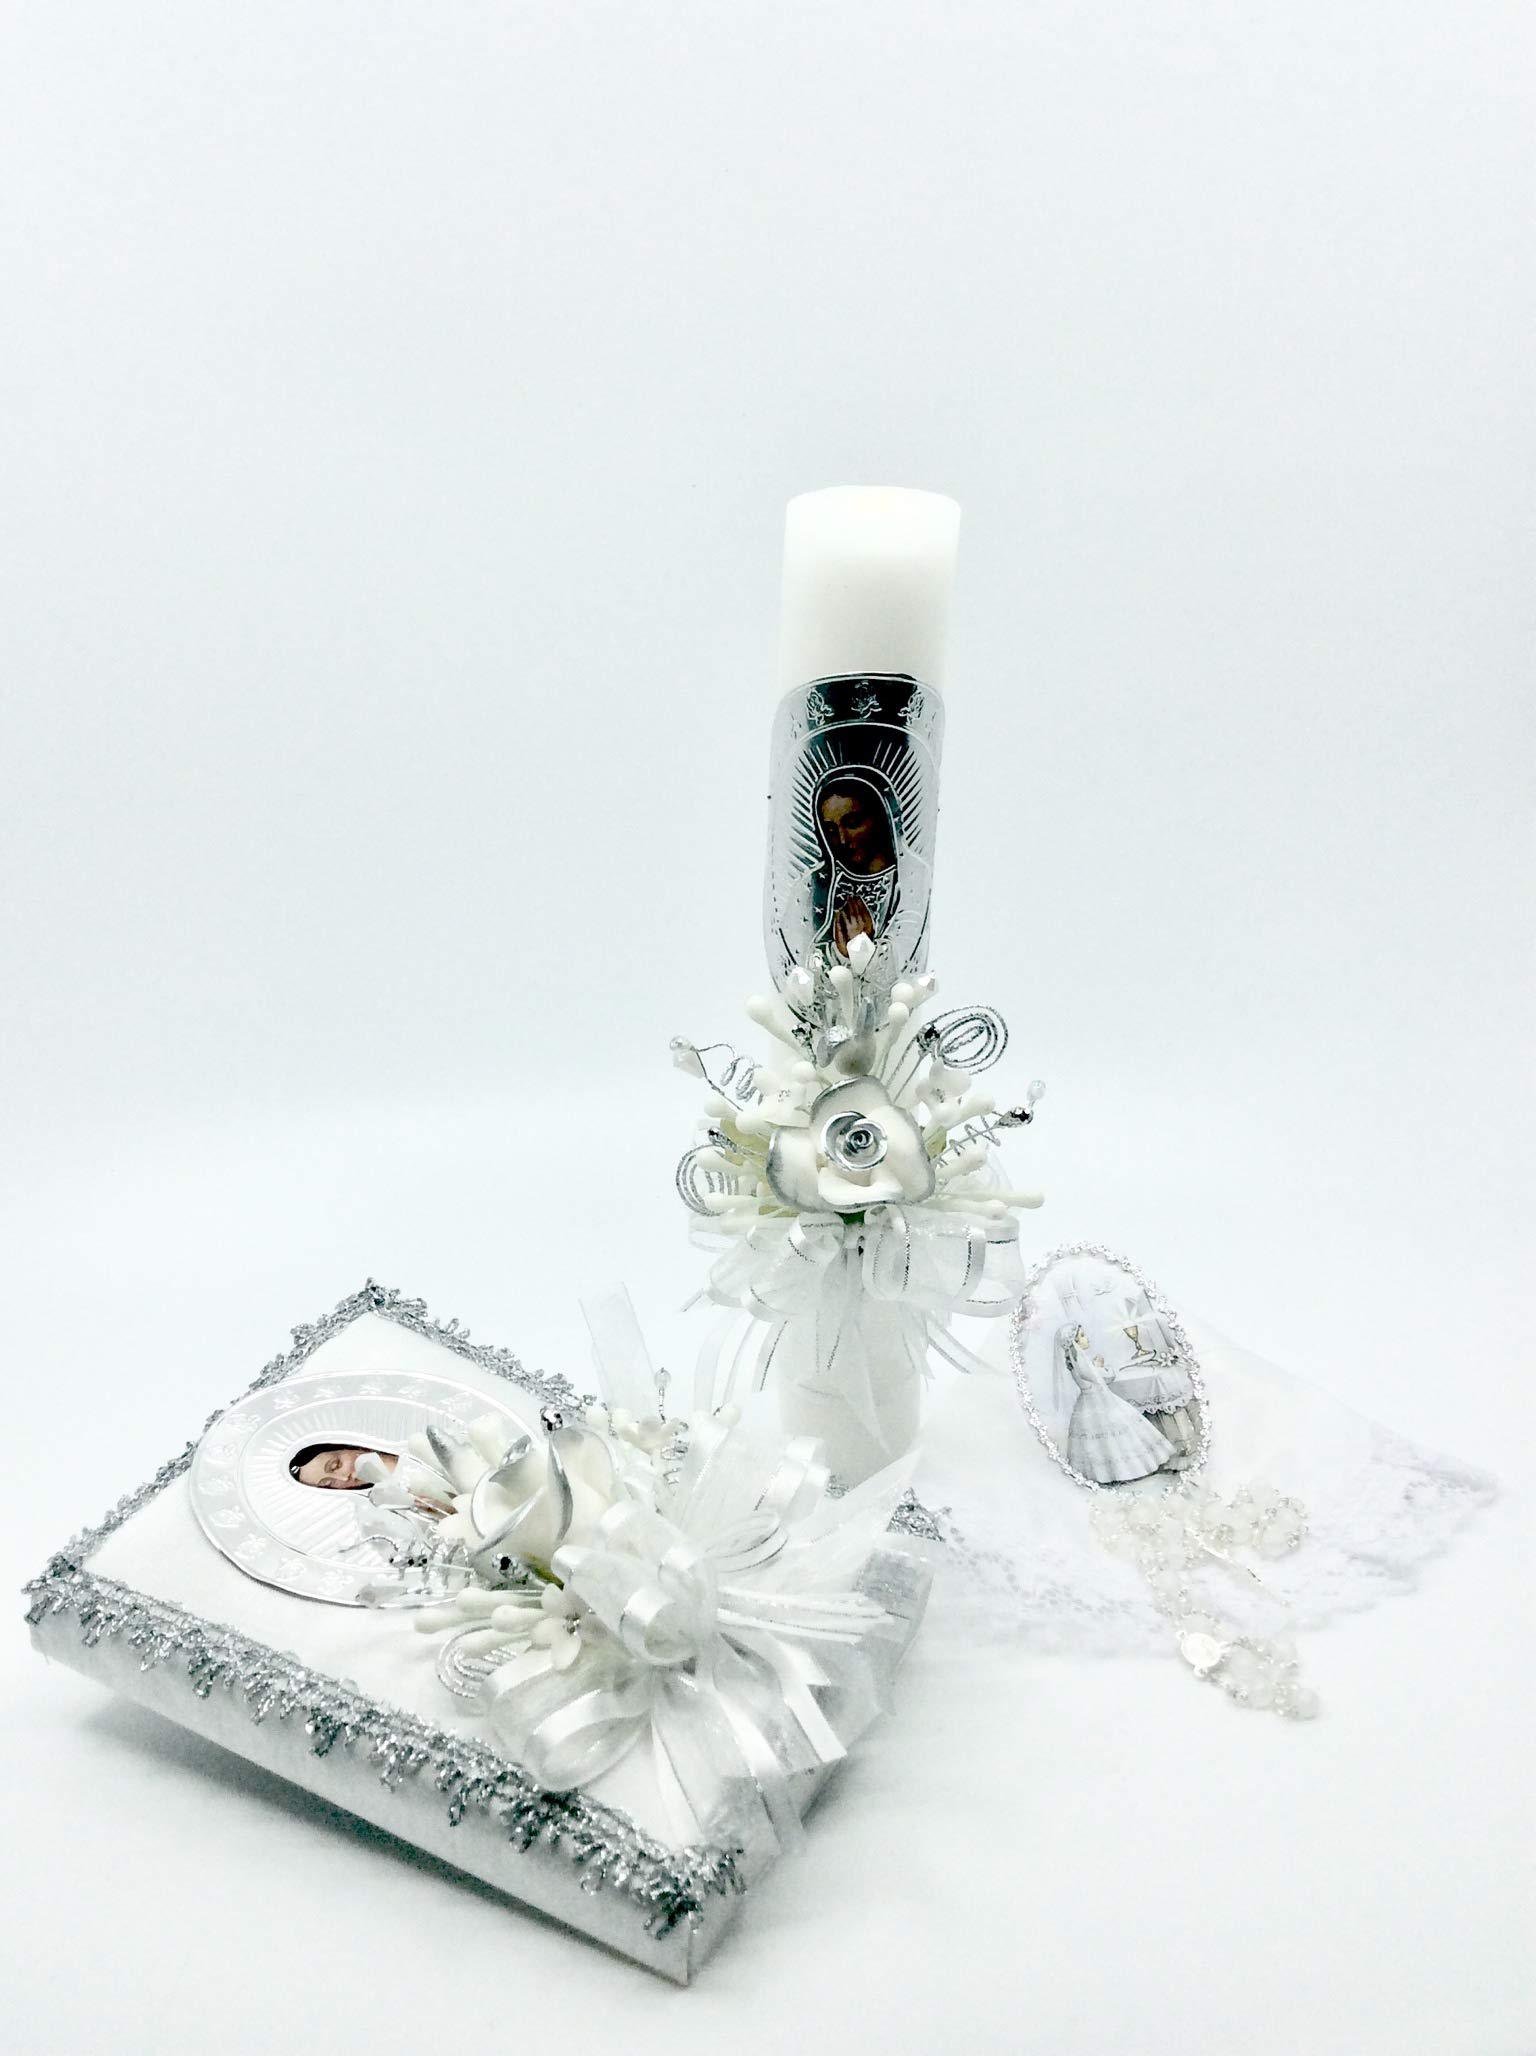 Casa Ixta First Communion Candle Lady of Guadalupe Image by Casa Ixta (Image #4)